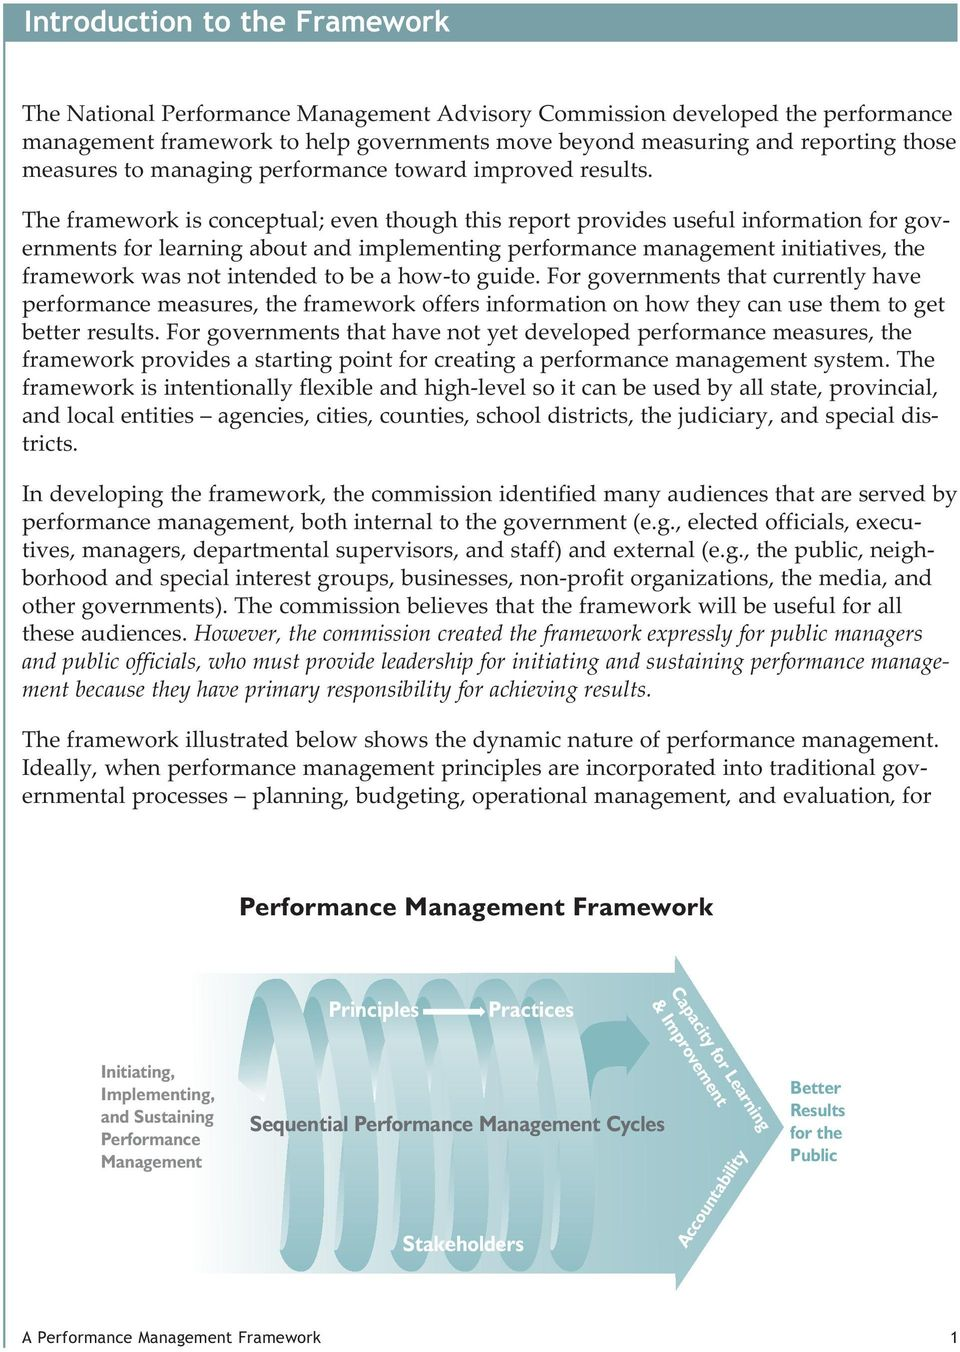 The framework is conceptual; even though this report provides useful information for governments for learning about and implementing performance management initiatives, the framework was not intended